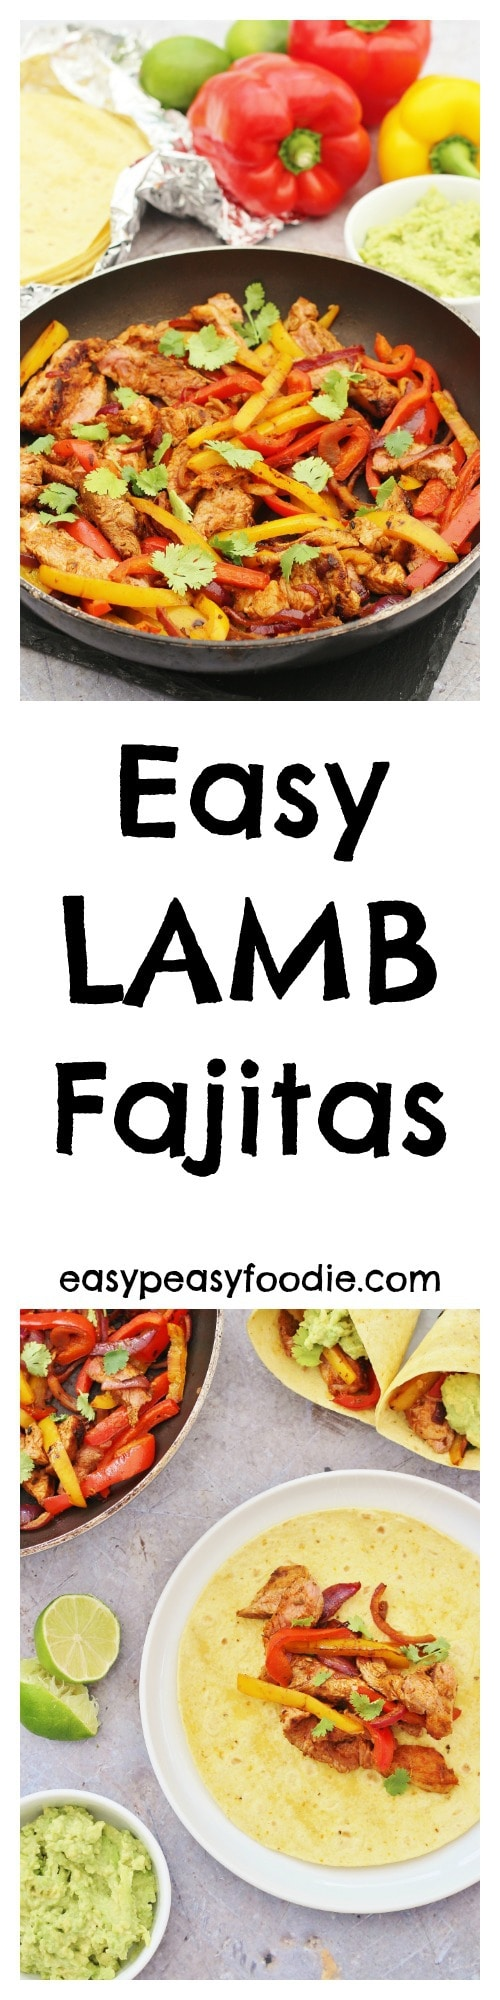 Fancy a change from chicken or beef fajitas? These Easy Lamb Fajitas could be just the thing! Easy to make and super tasty, they are perfect for shaking up your midweek meal routine. #lamb #fajitas #lambfajitas #mexican #easydinners #familydinners #guacamole #salsa #tortillas